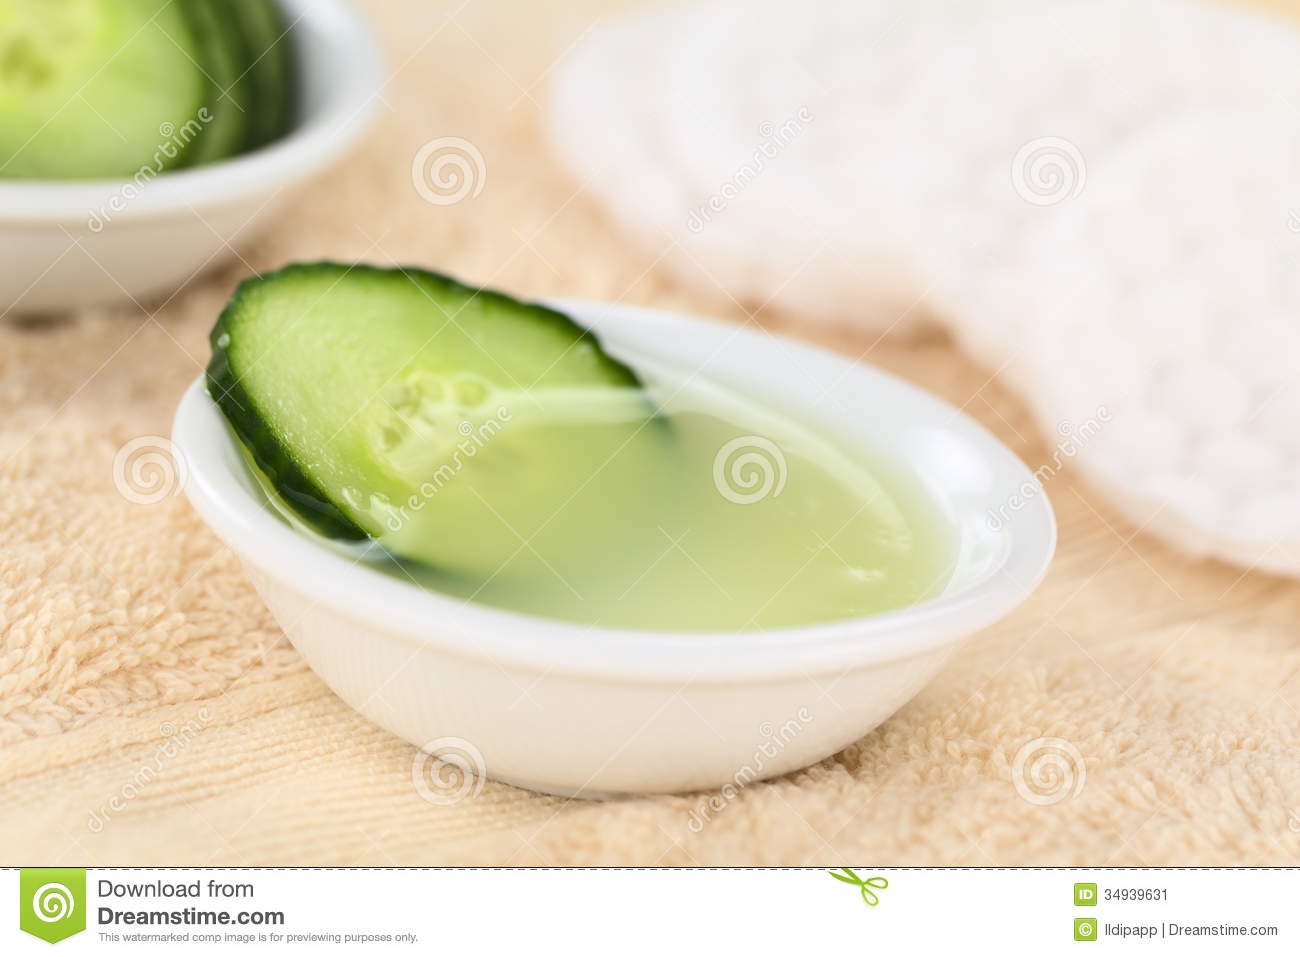 Consider, that naturel cucumber facial moisterizer thanks for